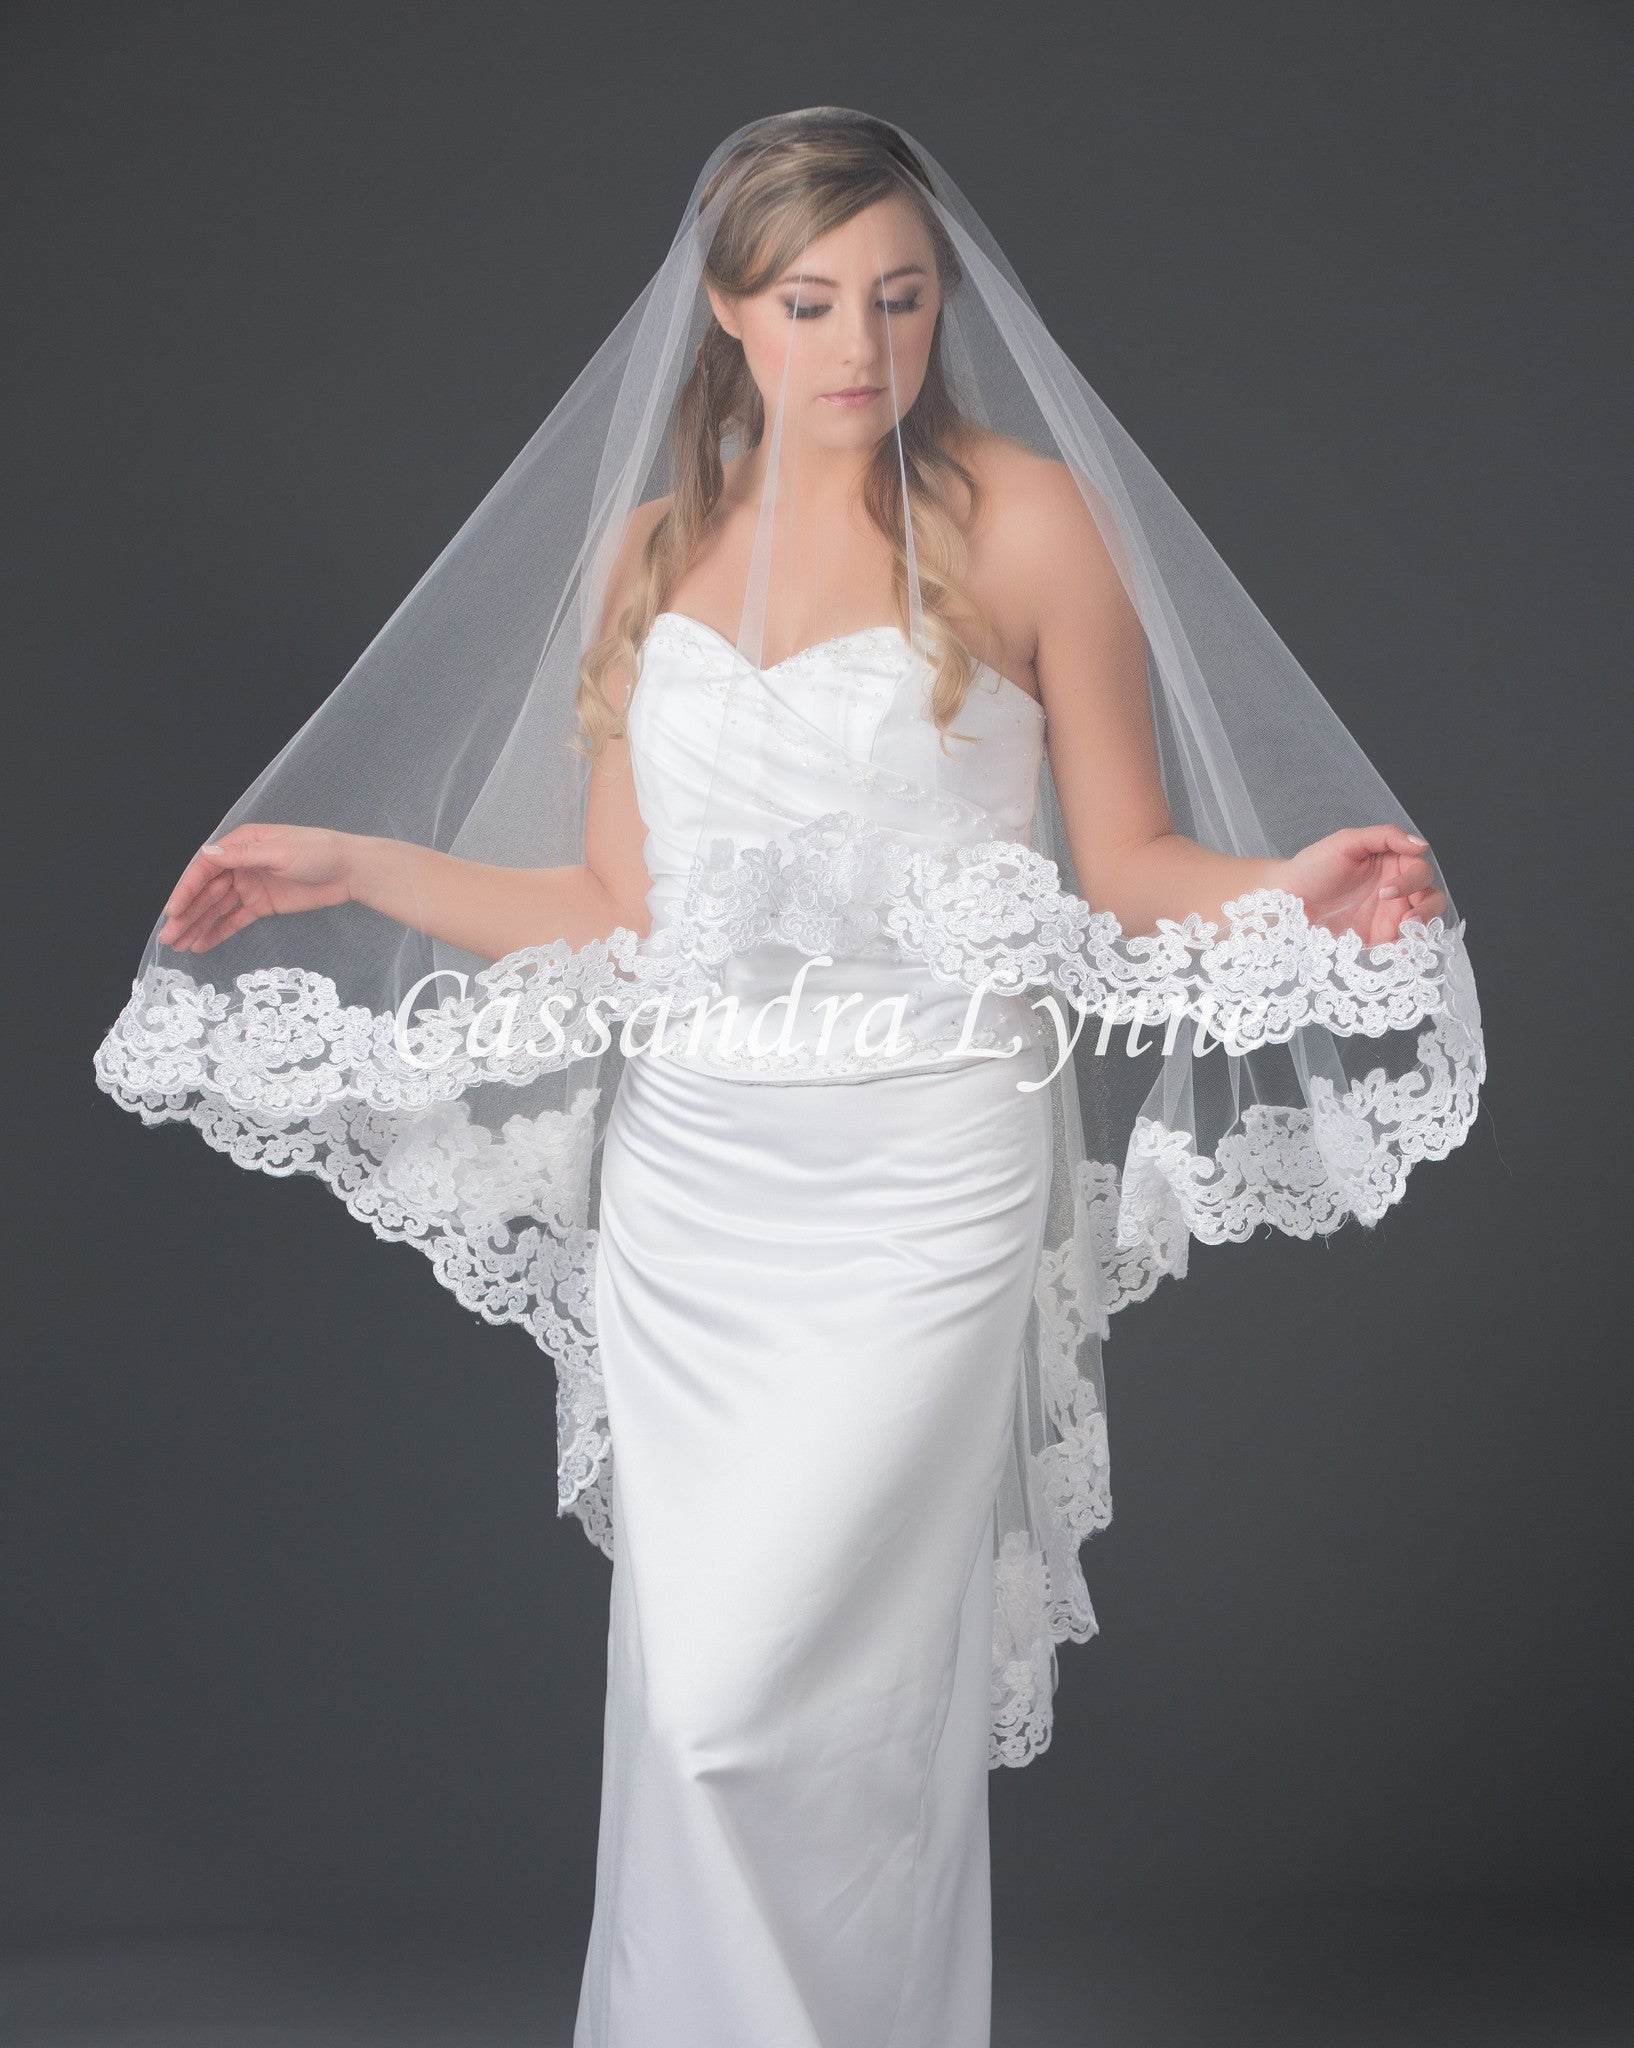 lace wedding veil knee length 45 inches wedding veils Lace Wedding Veil Knee Length 45 Inches